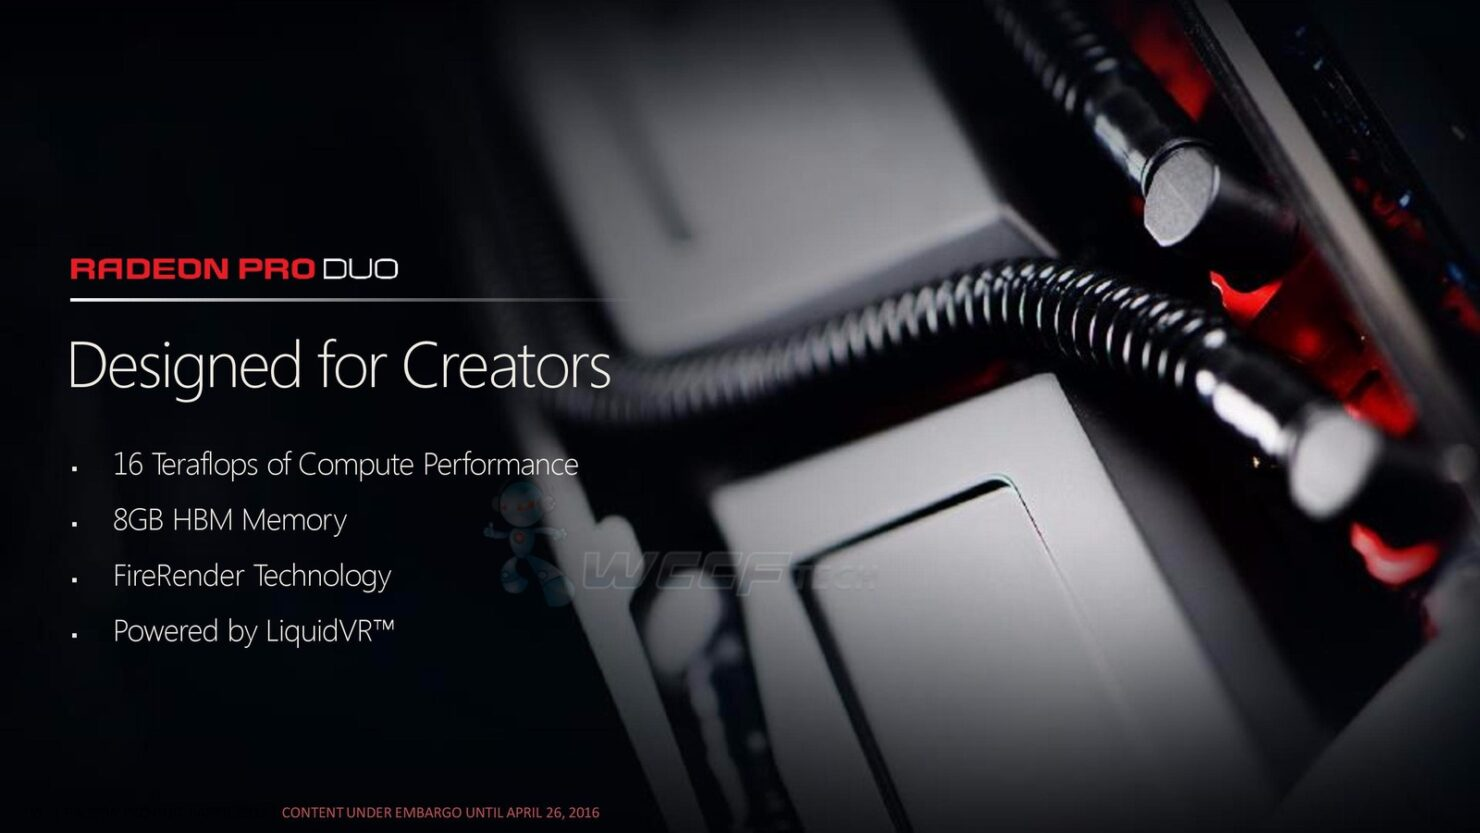 amd-radeon-pro-duo-graphics-card_features-2